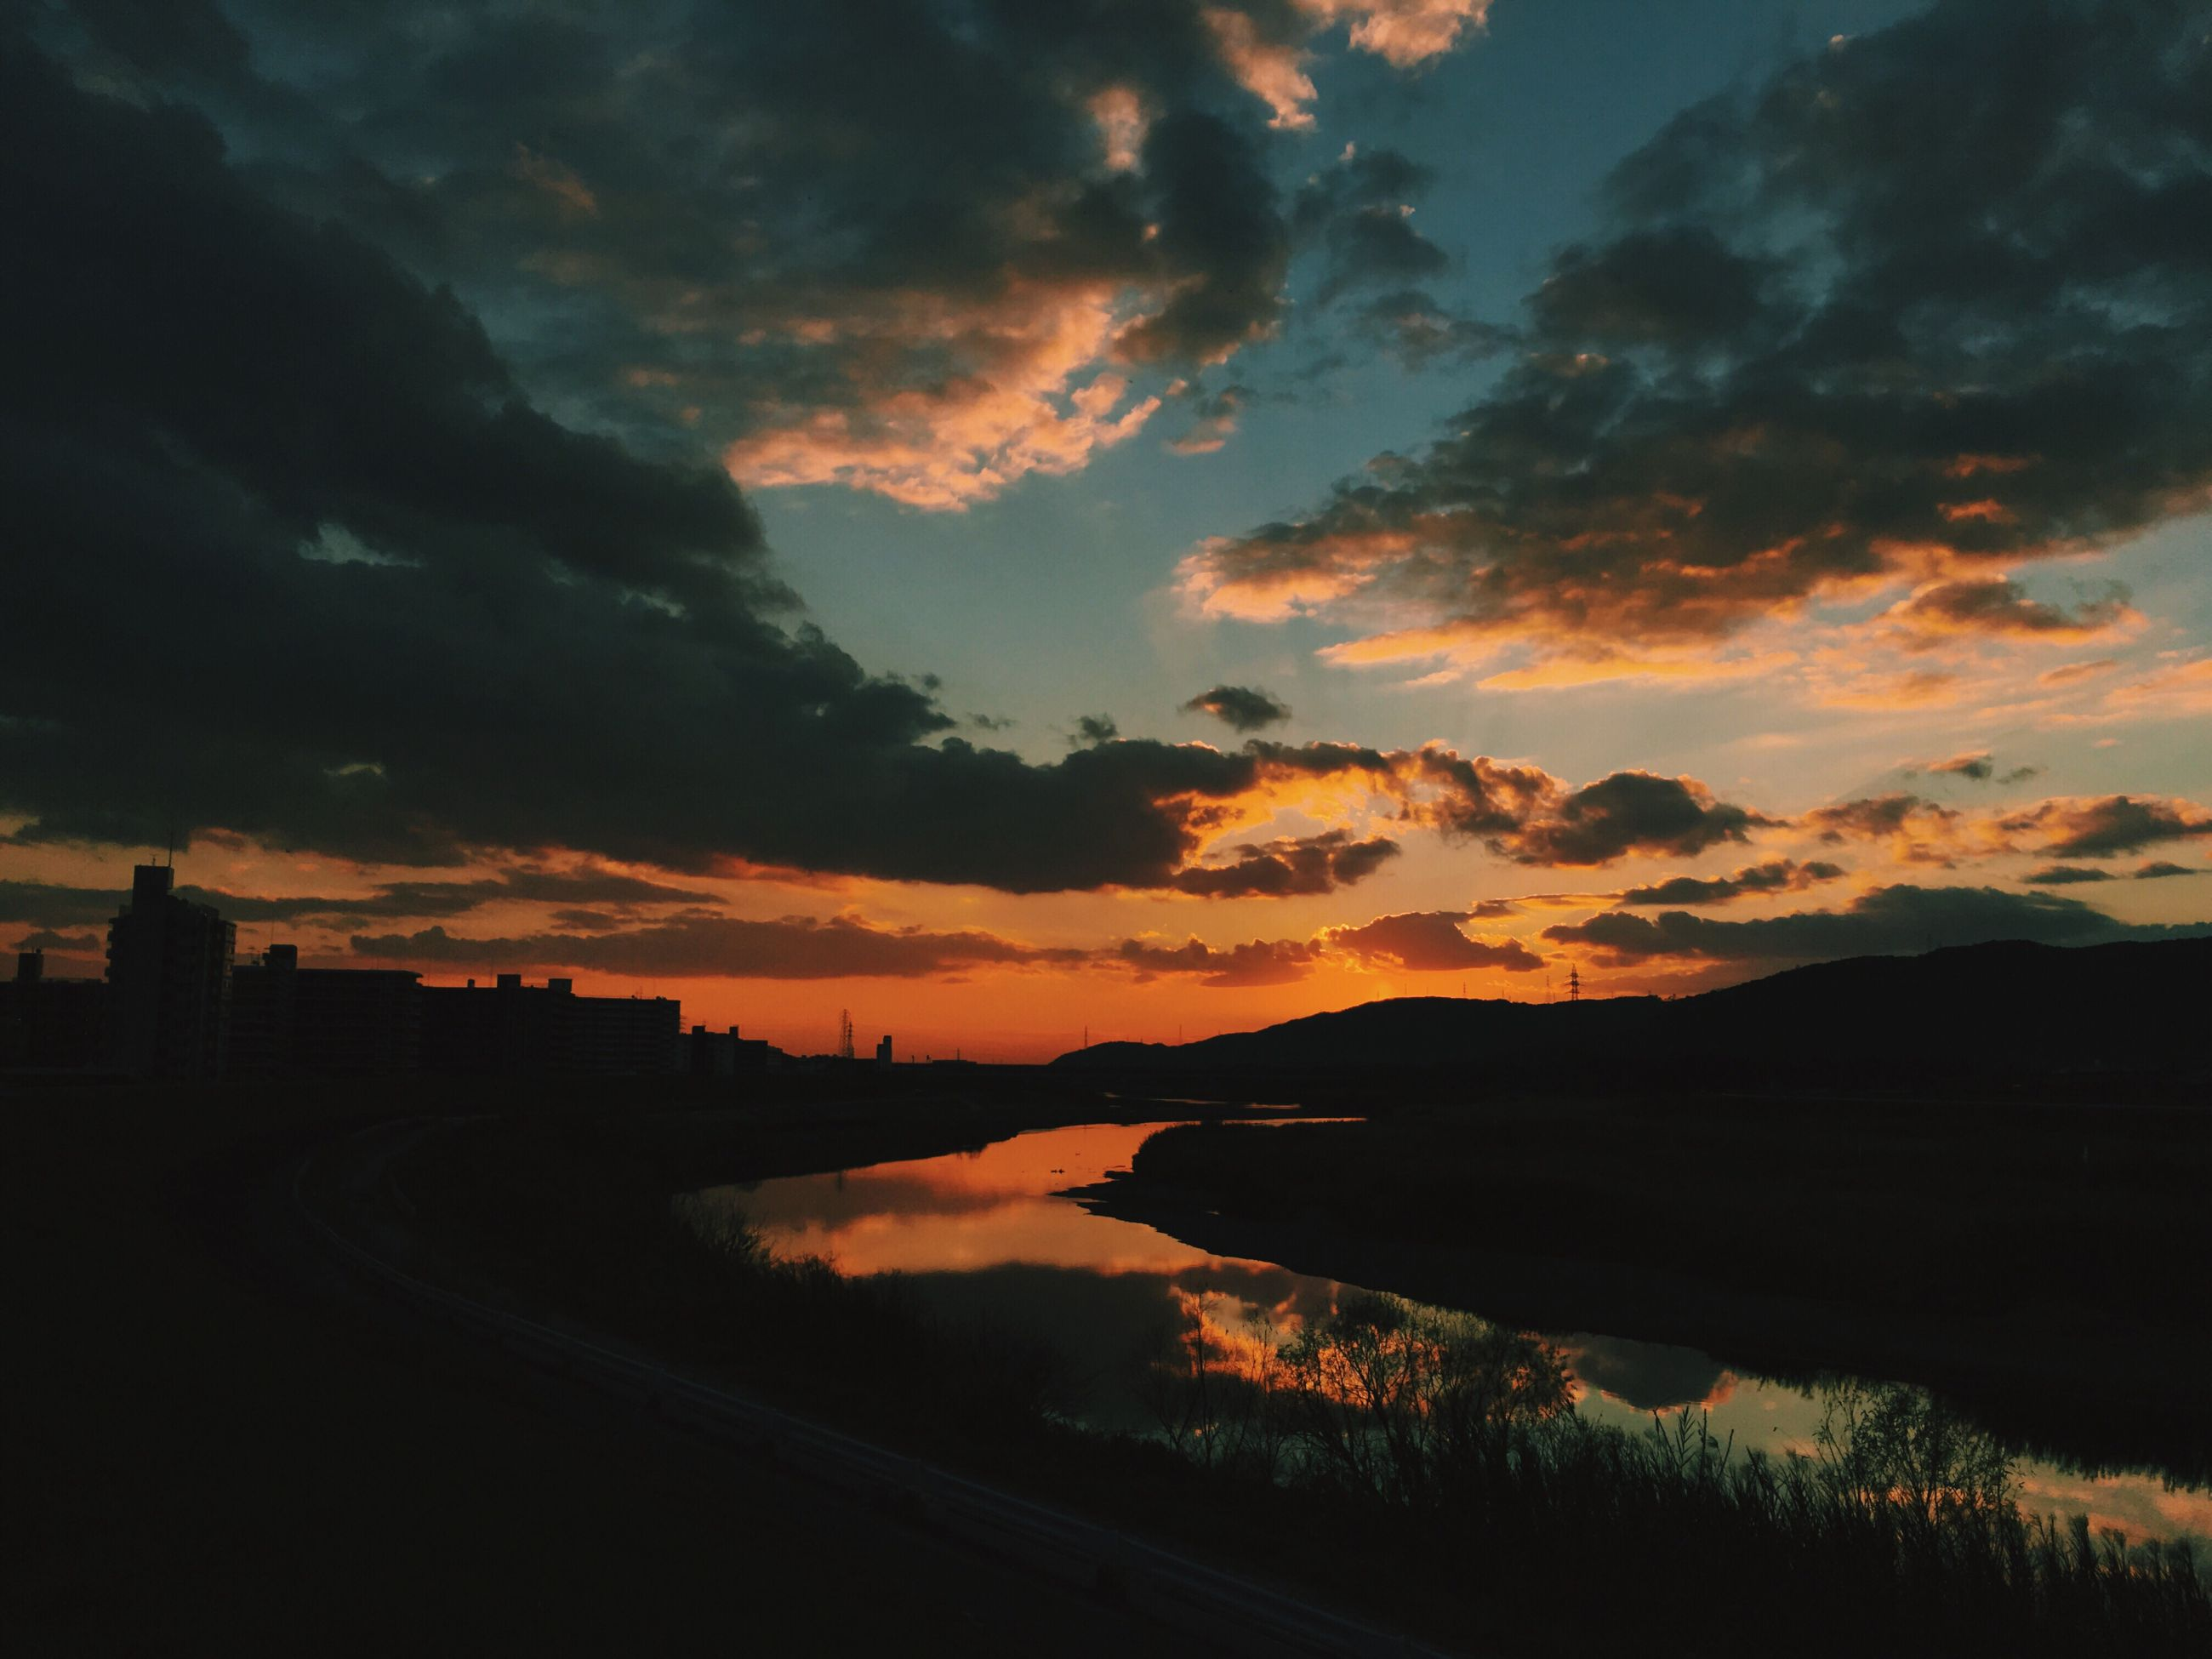 sunset, sky, silhouette, scenics, water, tranquil scene, cloud - sky, beauty in nature, tranquility, orange color, dramatic sky, idyllic, nature, mountain, cloud, lake, cloudy, river, landscape, moody sky